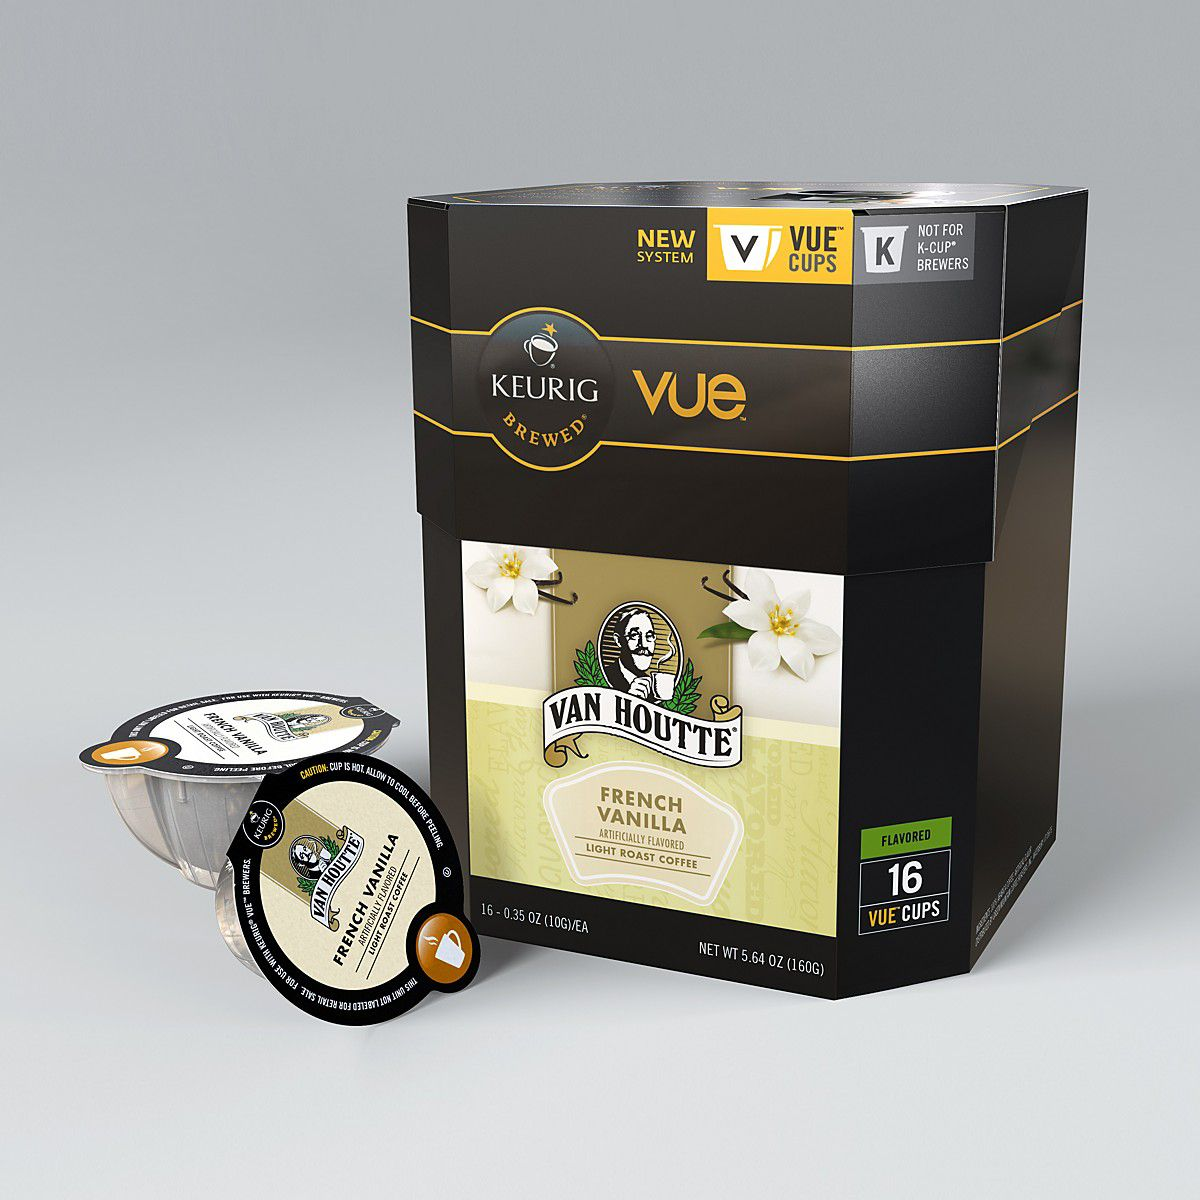 Van Houtte French Vanilla Coffee Vue Cups